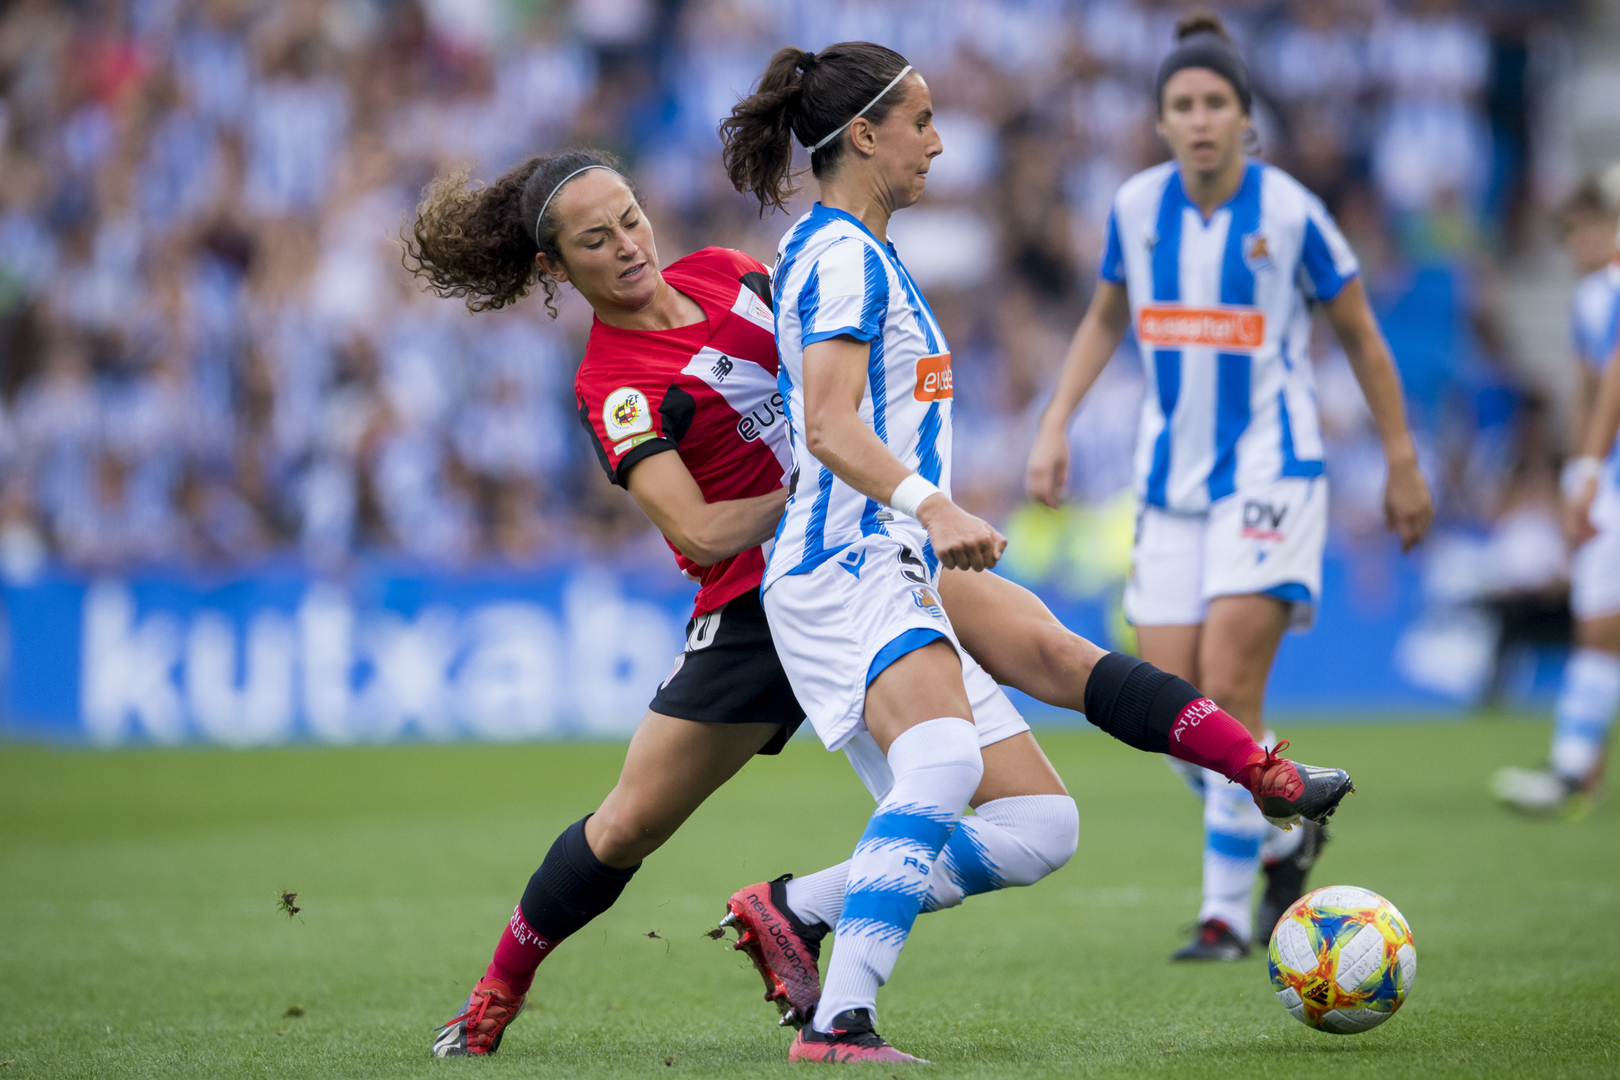 Leia Zarate, on loan to Alavés